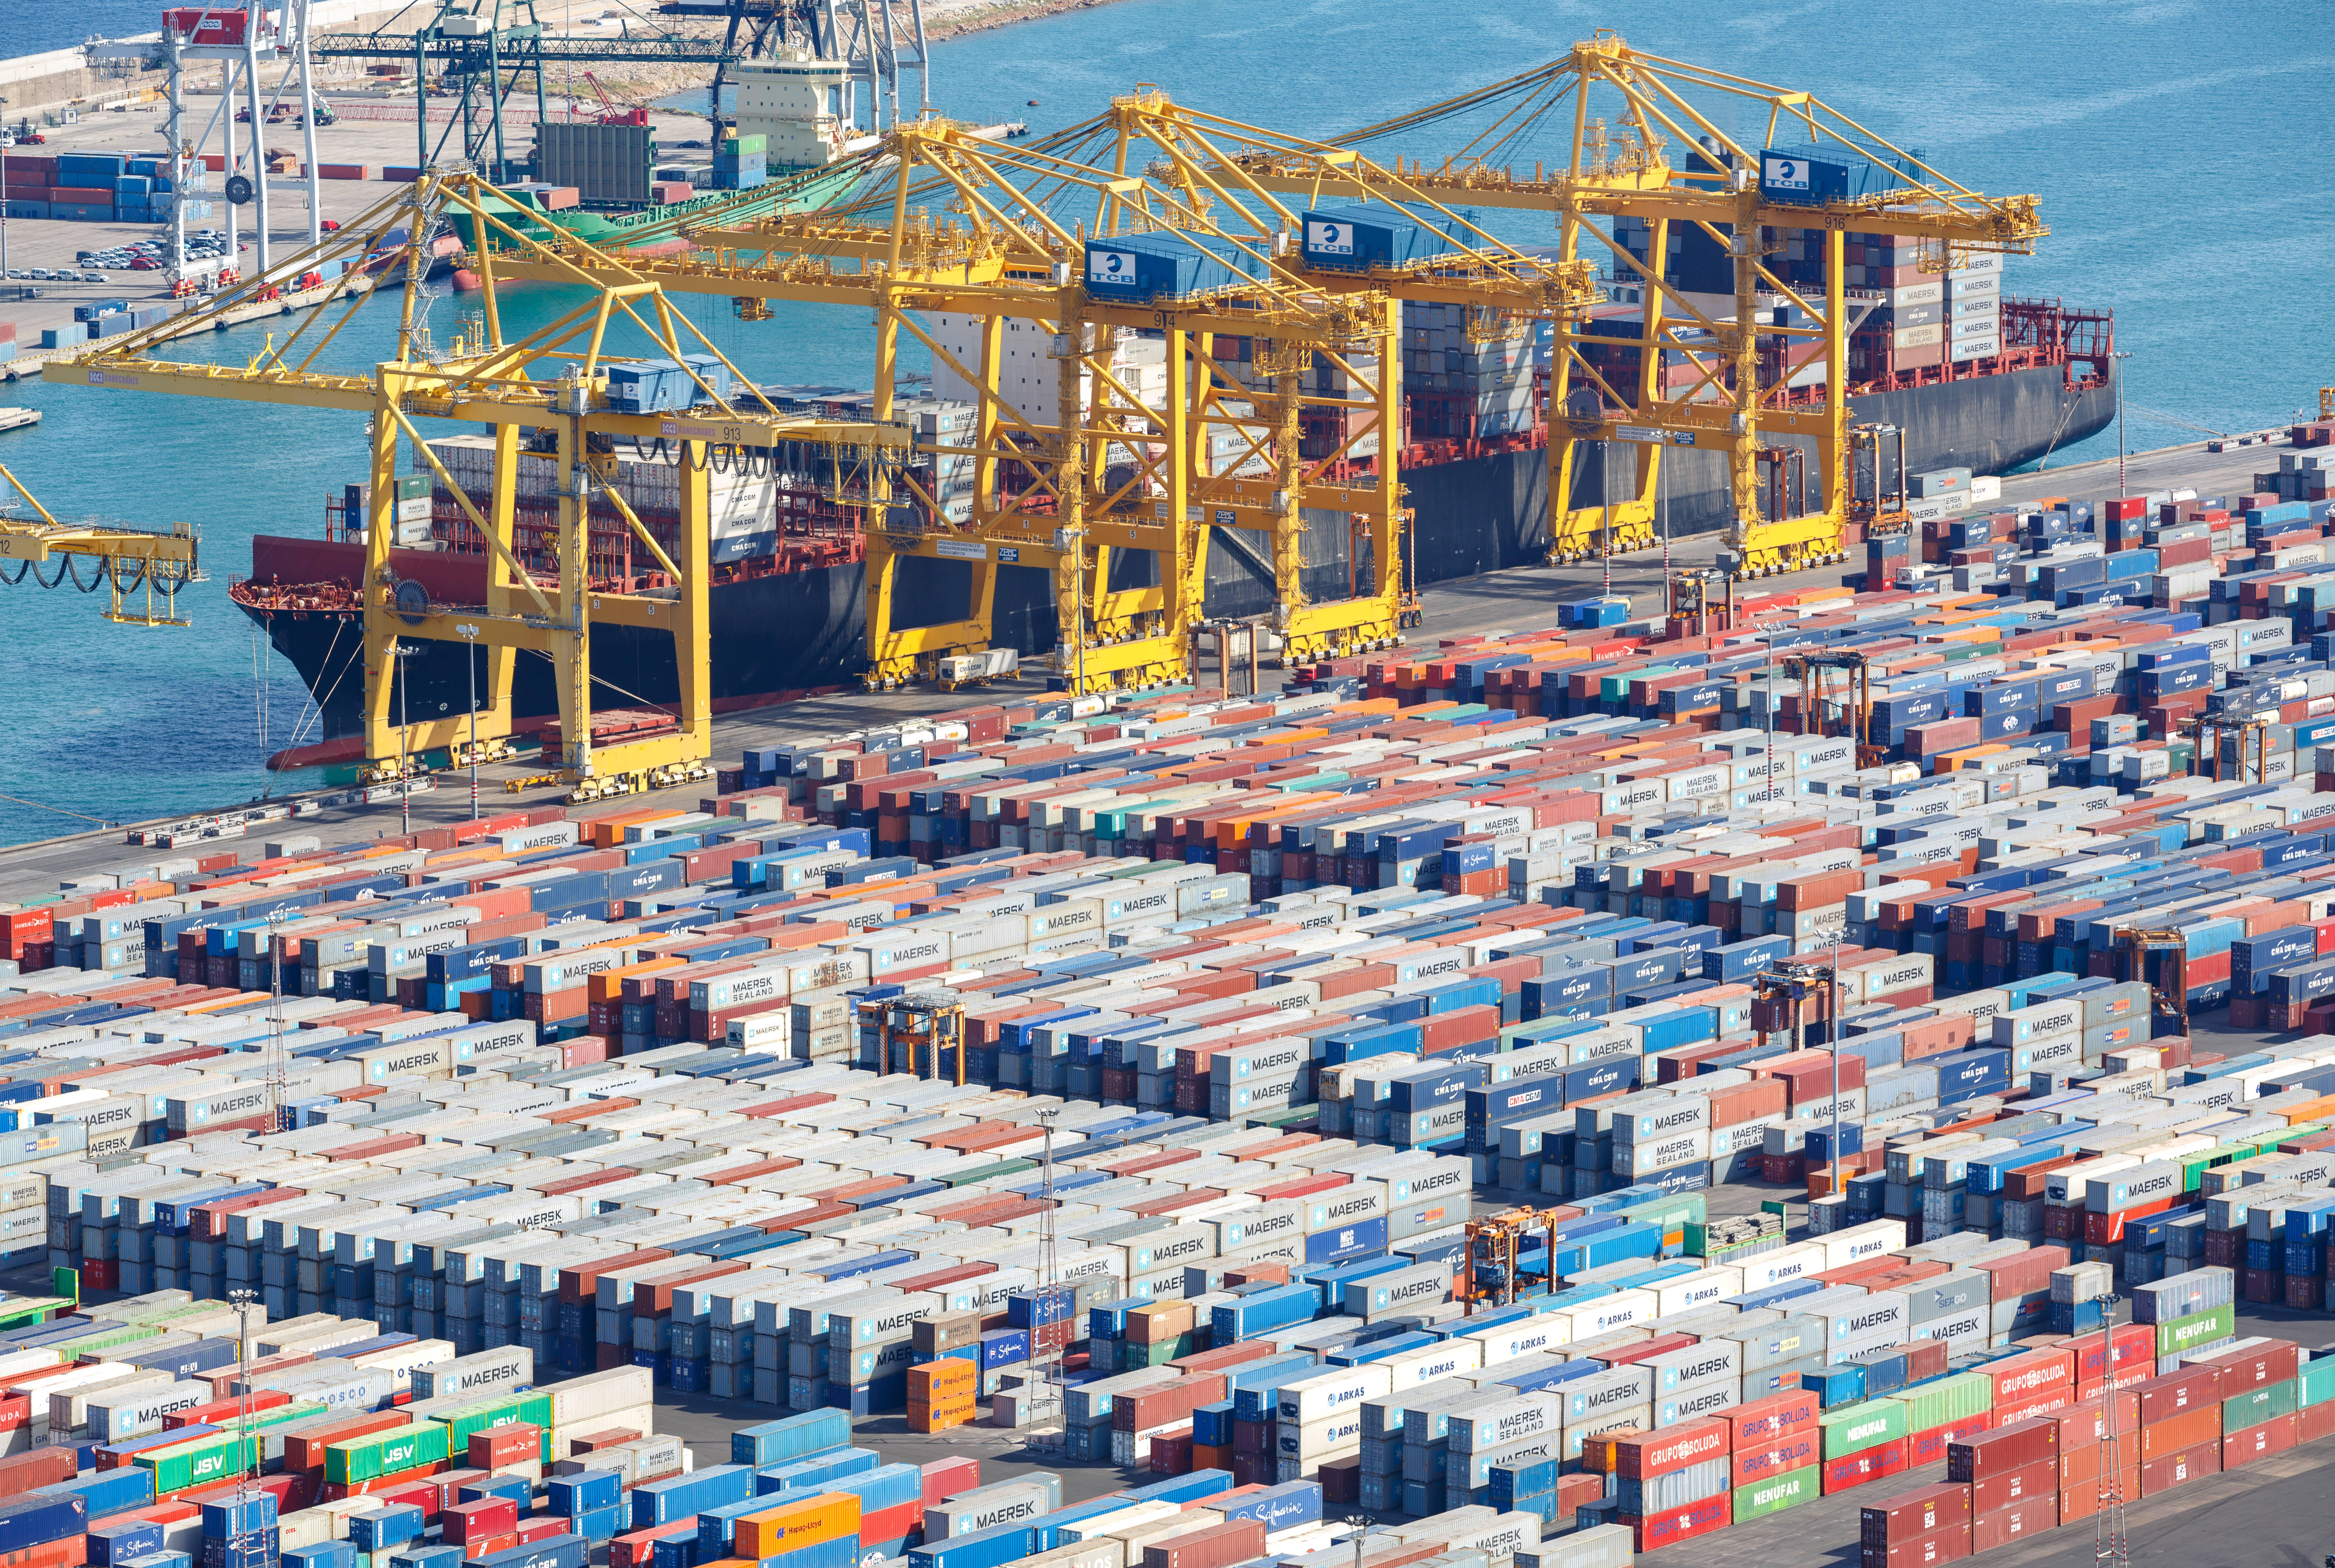 A colossal amount of cargo goes through the world's ports, like Barcelona's here in Spain, sent by standard-sized containers loaded on and off ships, trucks and trains. IBM and allies say their TradeLens blockchain-based network streamlines the paperwork.